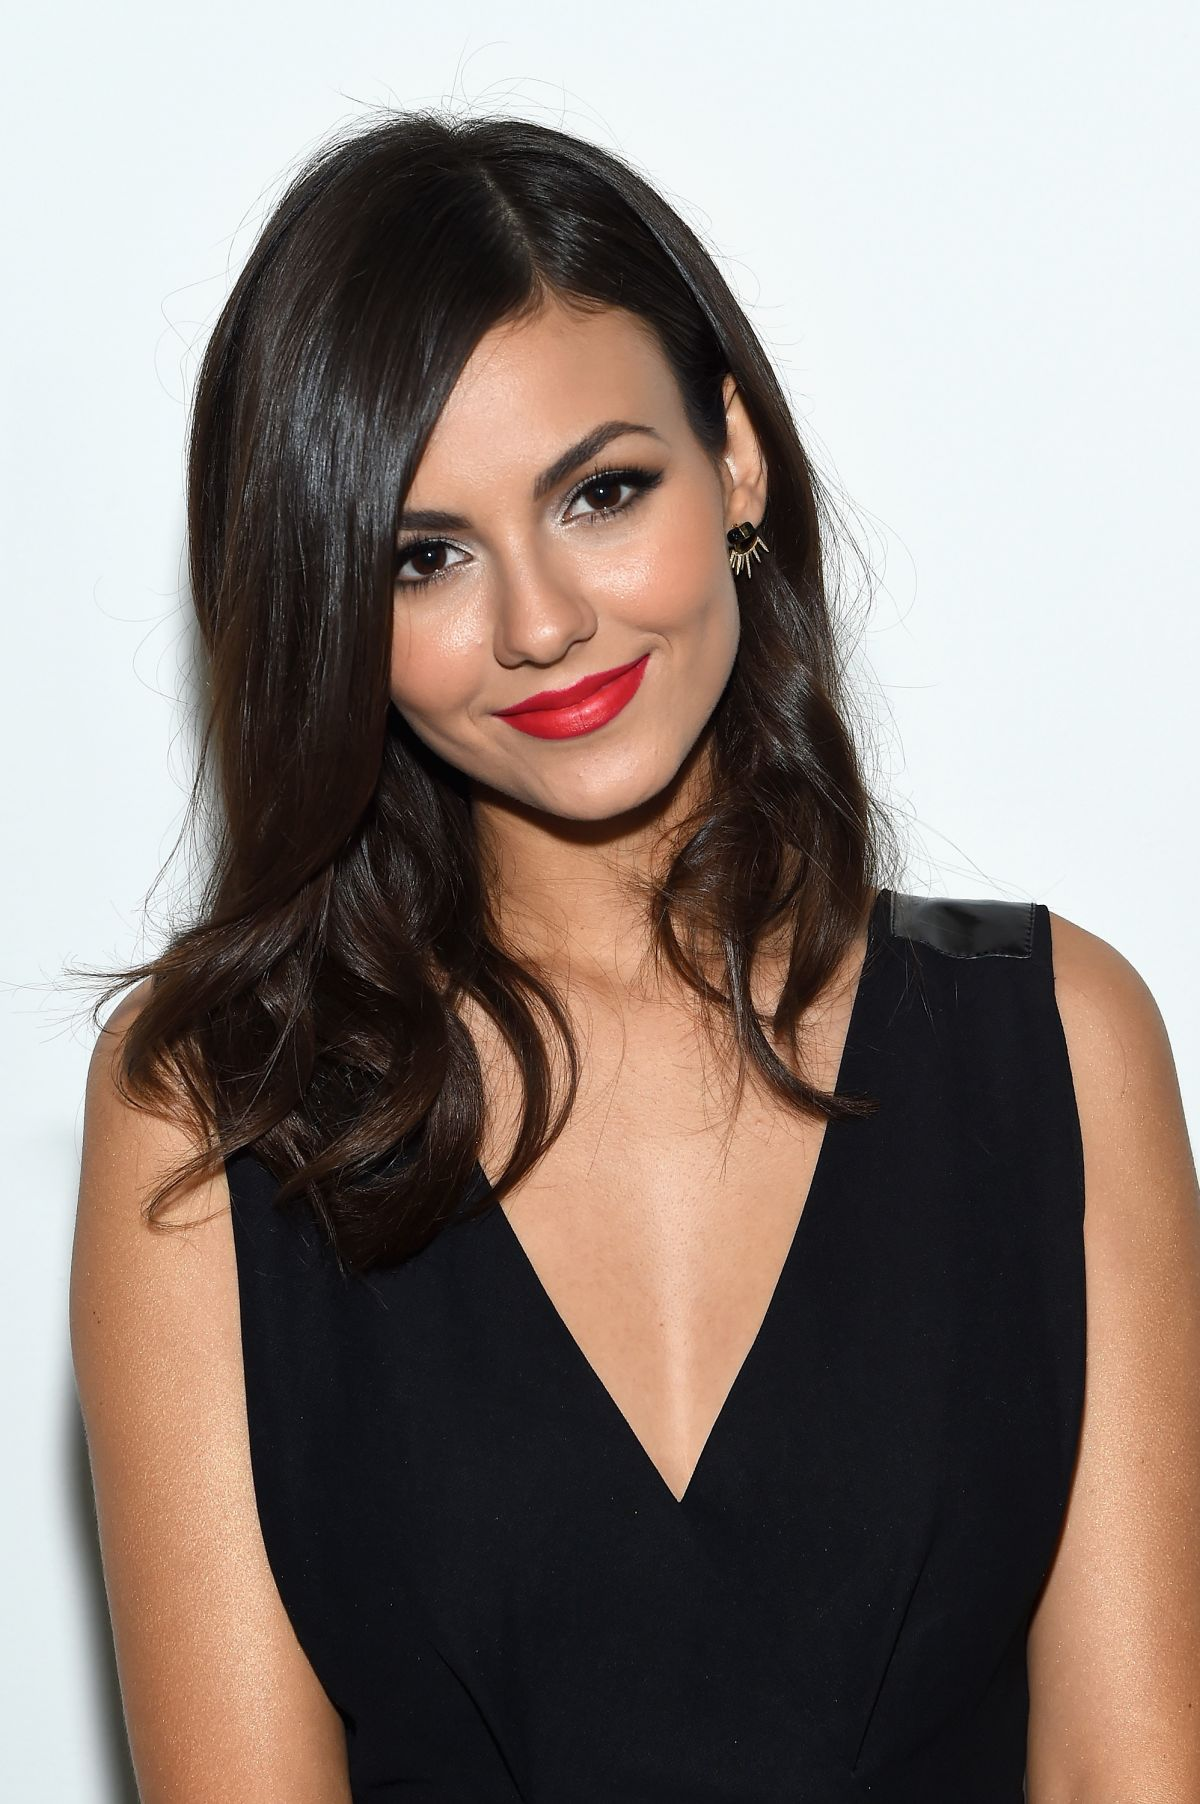 Victoria Justice born February 19, 1993 (age 25) Victoria Justice born February 19, 1993 (age 25) new images